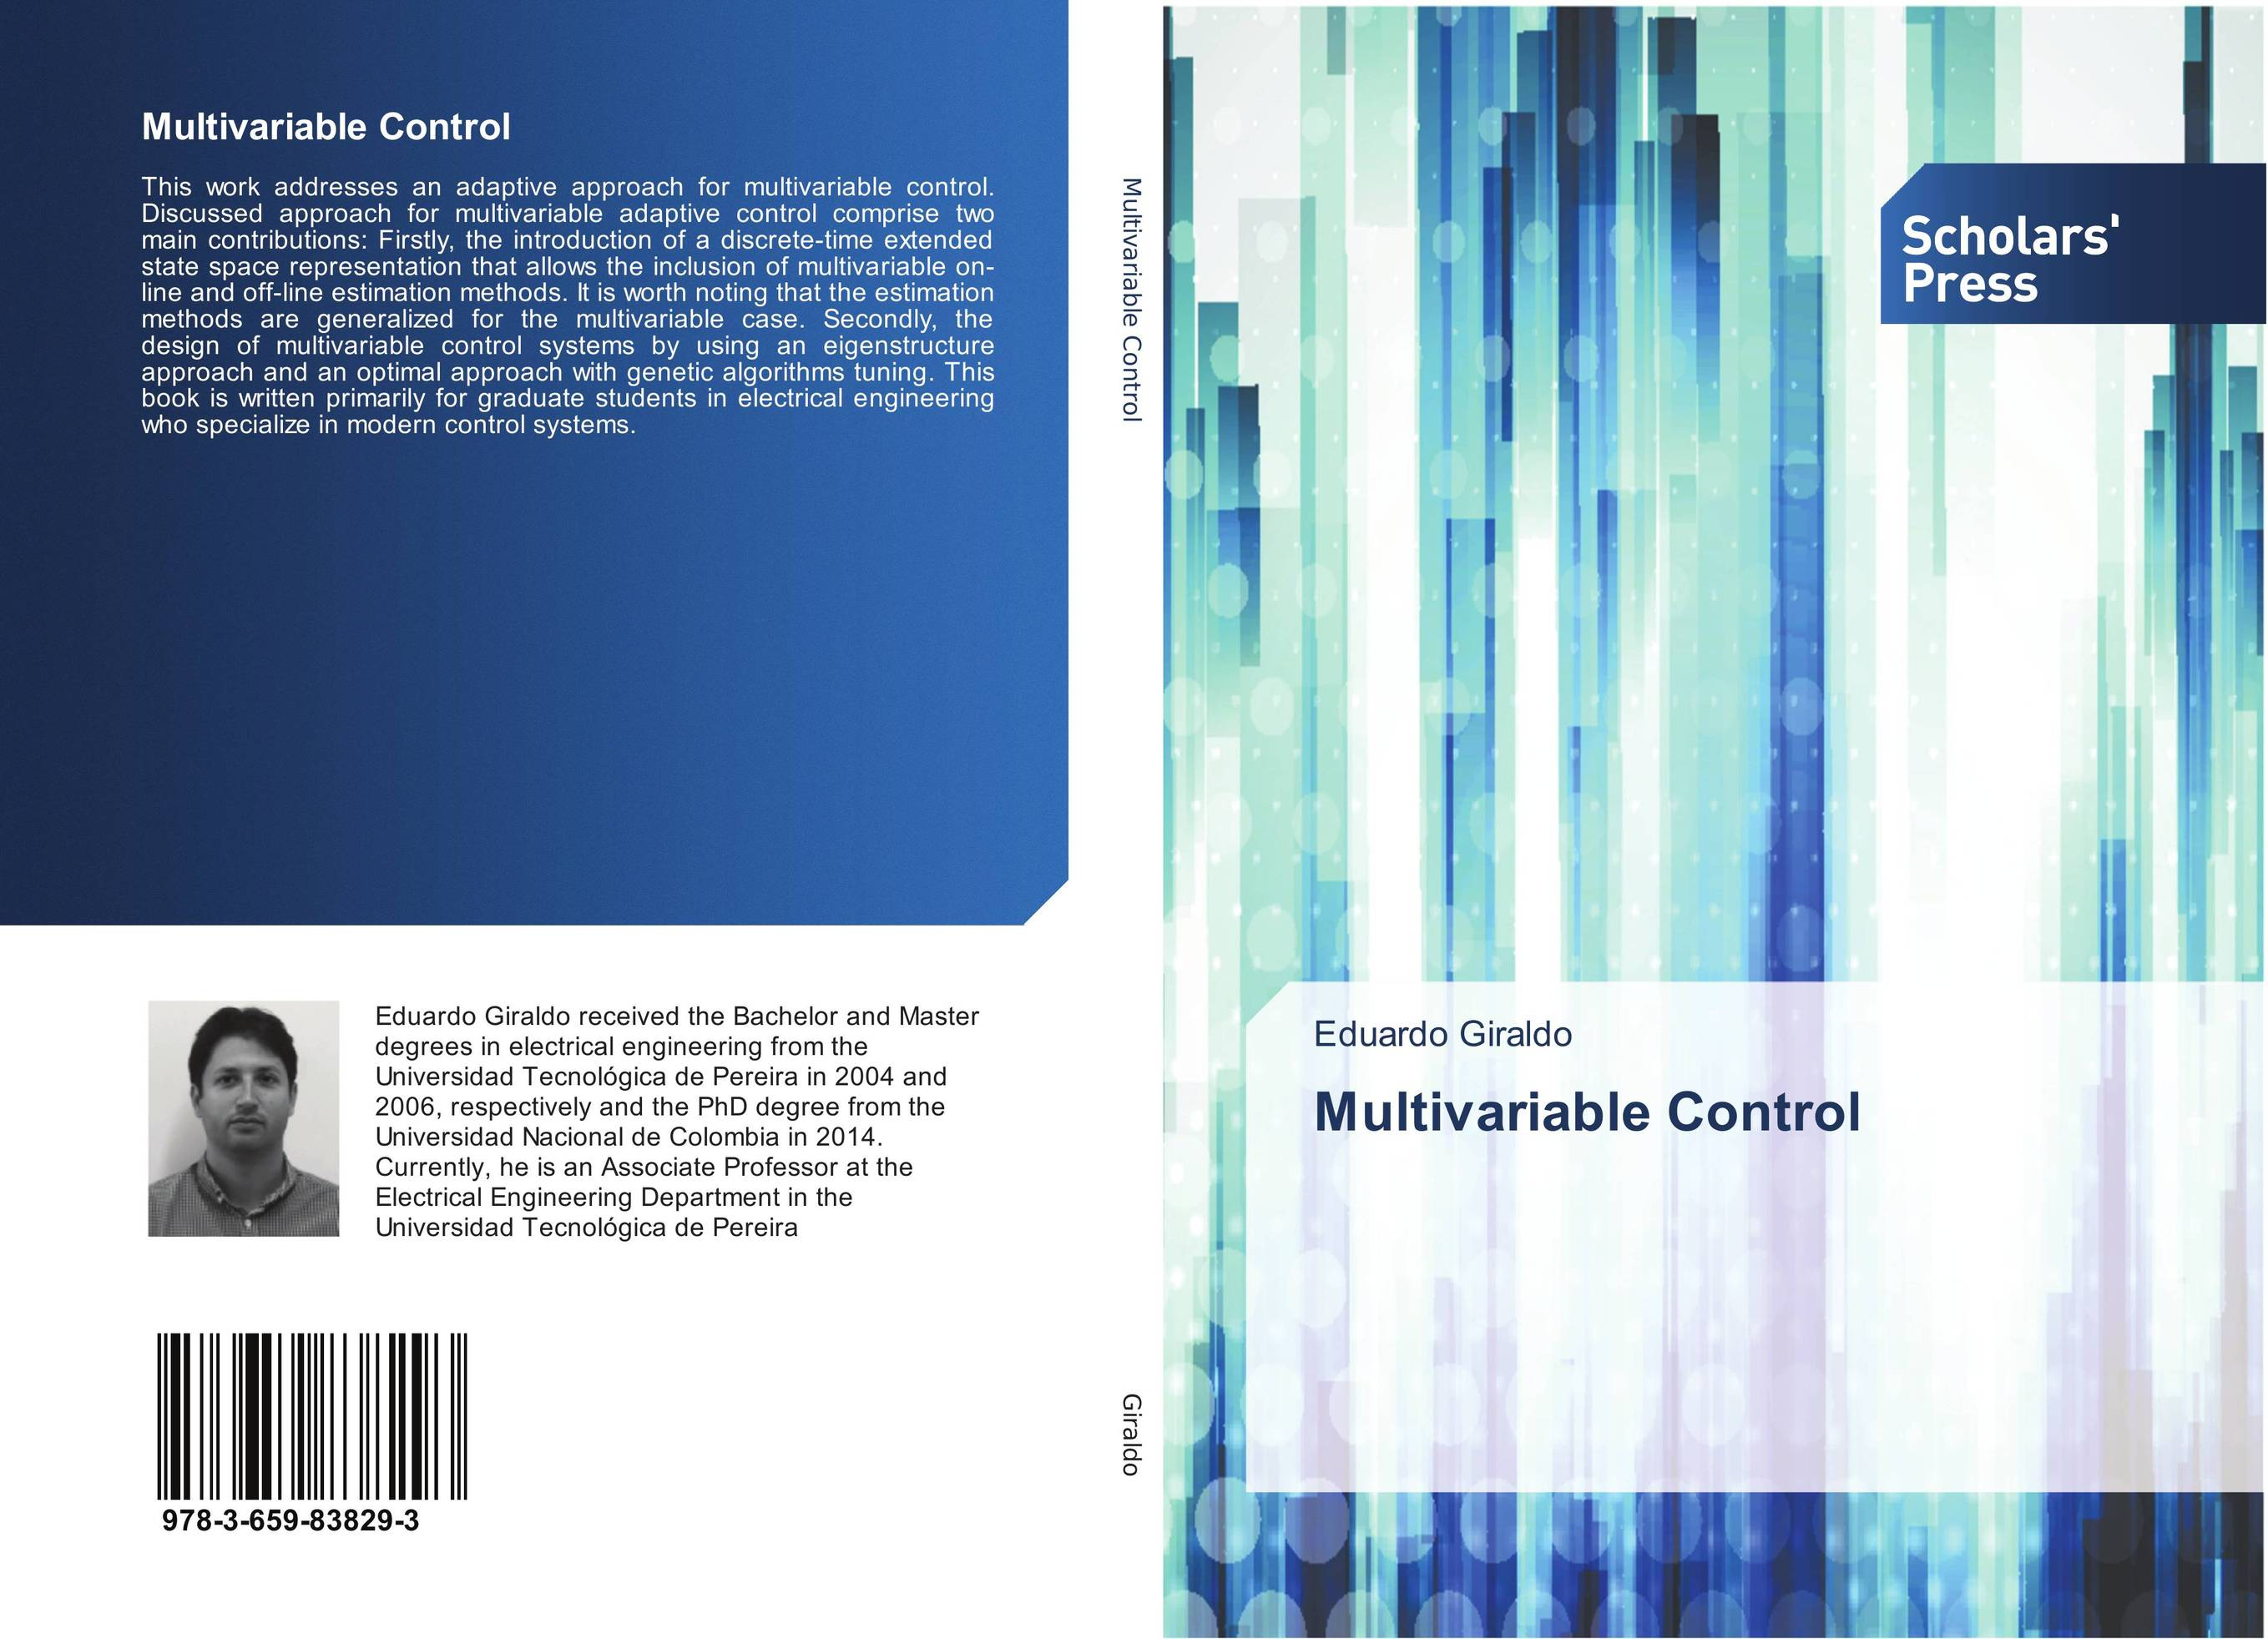 Multivariable Control affair of state an